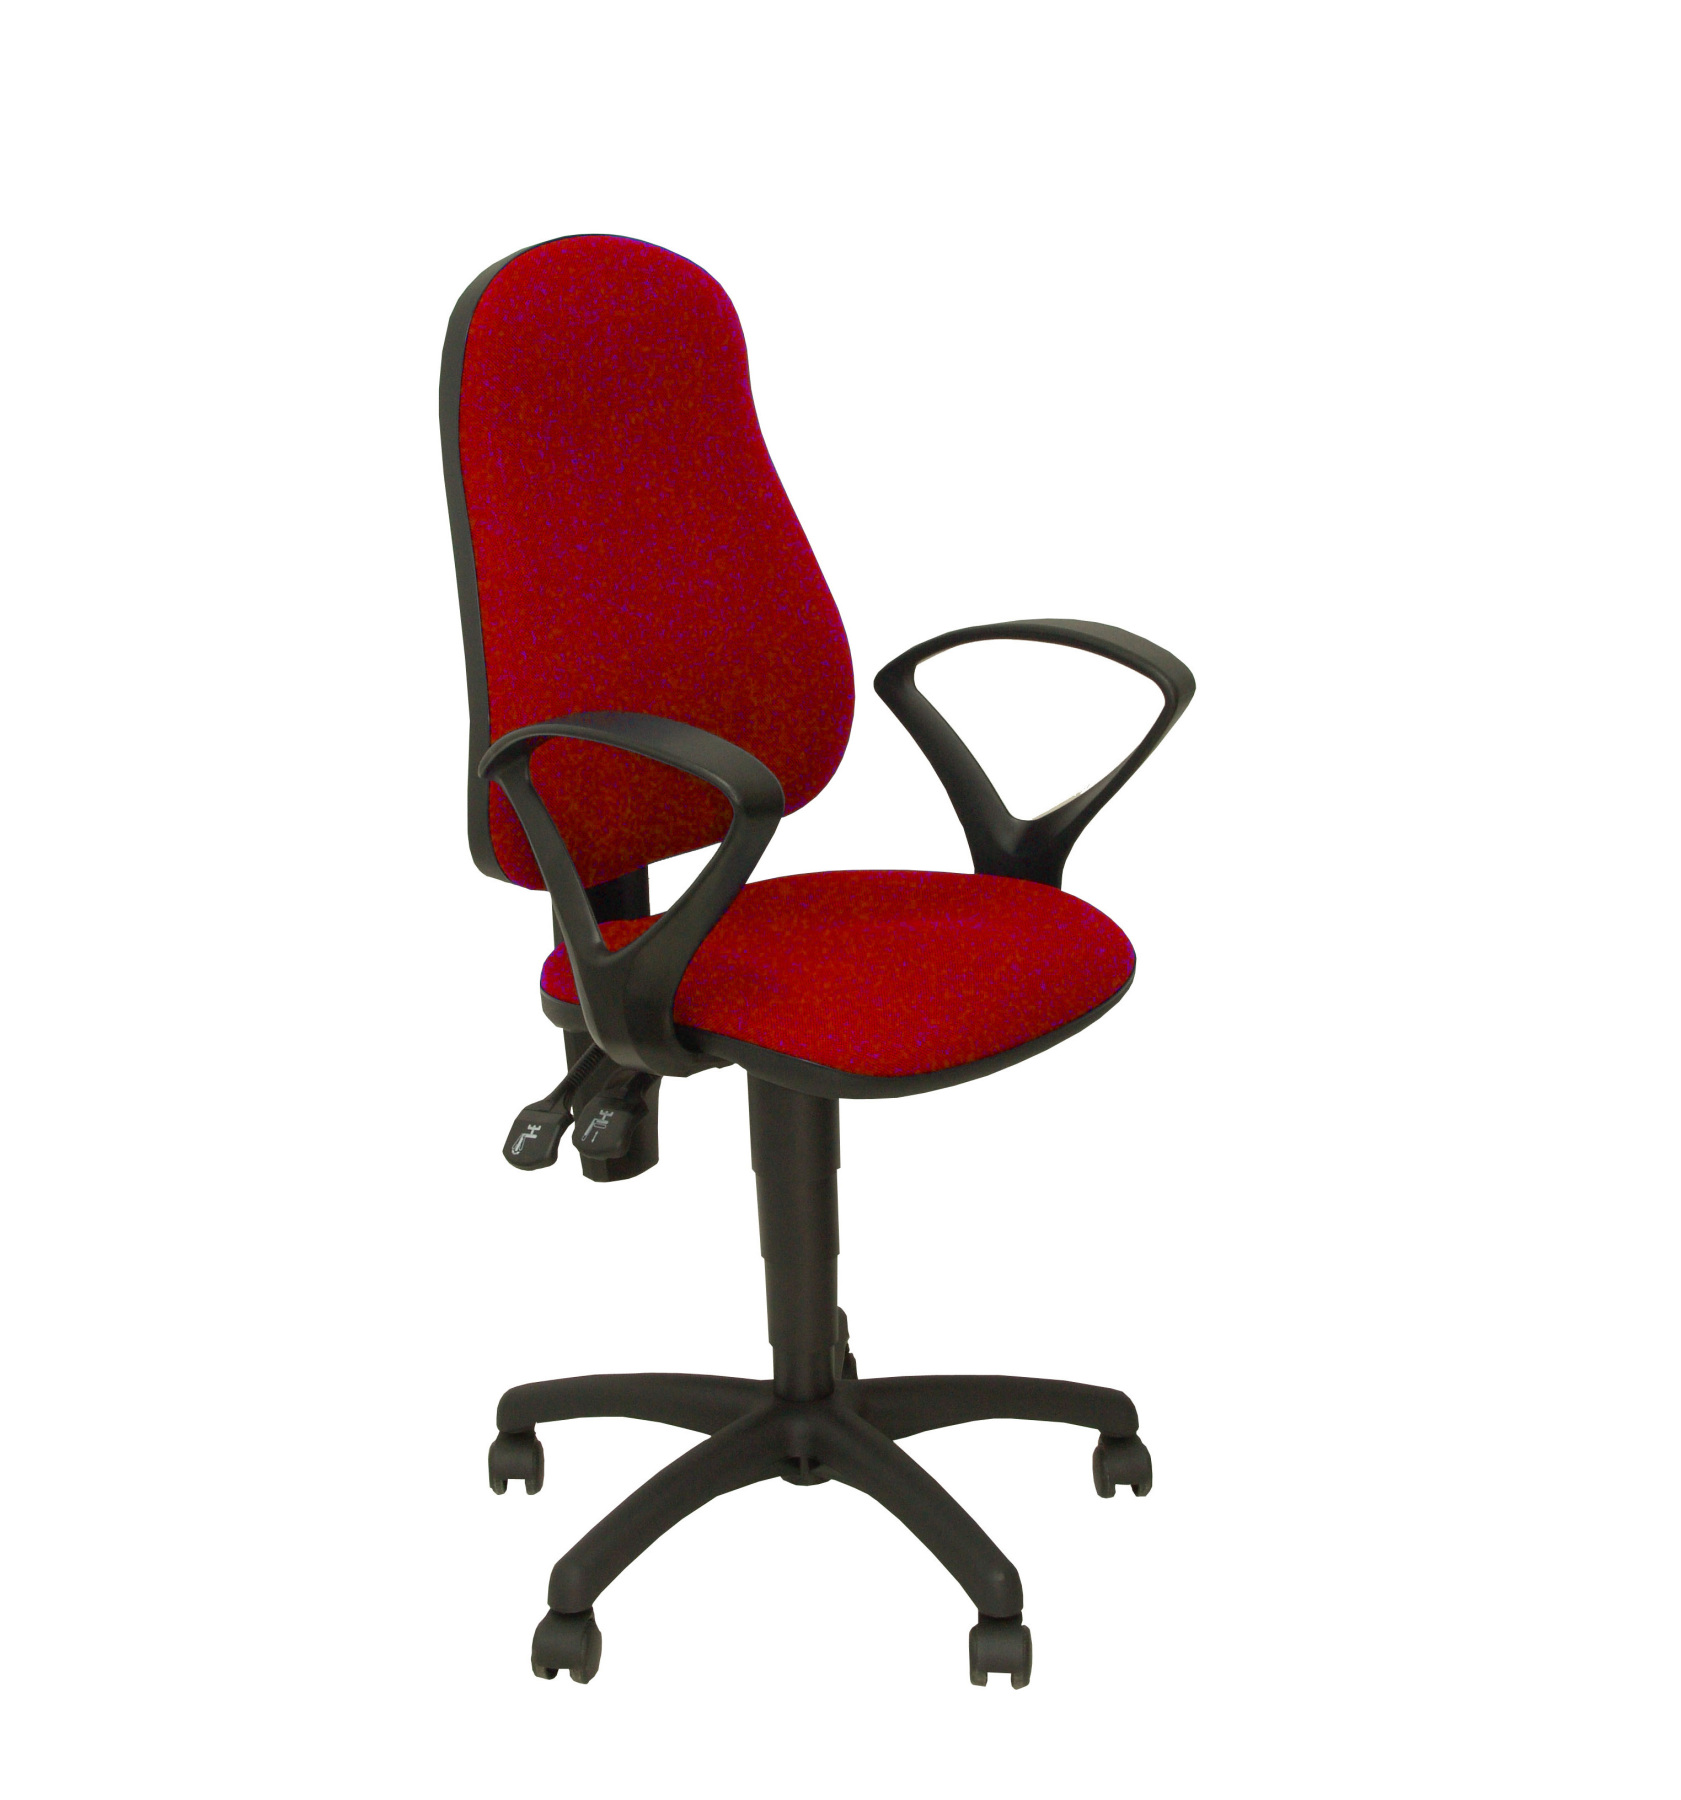 Chair's Office Desk Ergonomic With Permanent Contact's House Mechanism Double Handle, Dimmable In High Altitude And Arms Fixed-